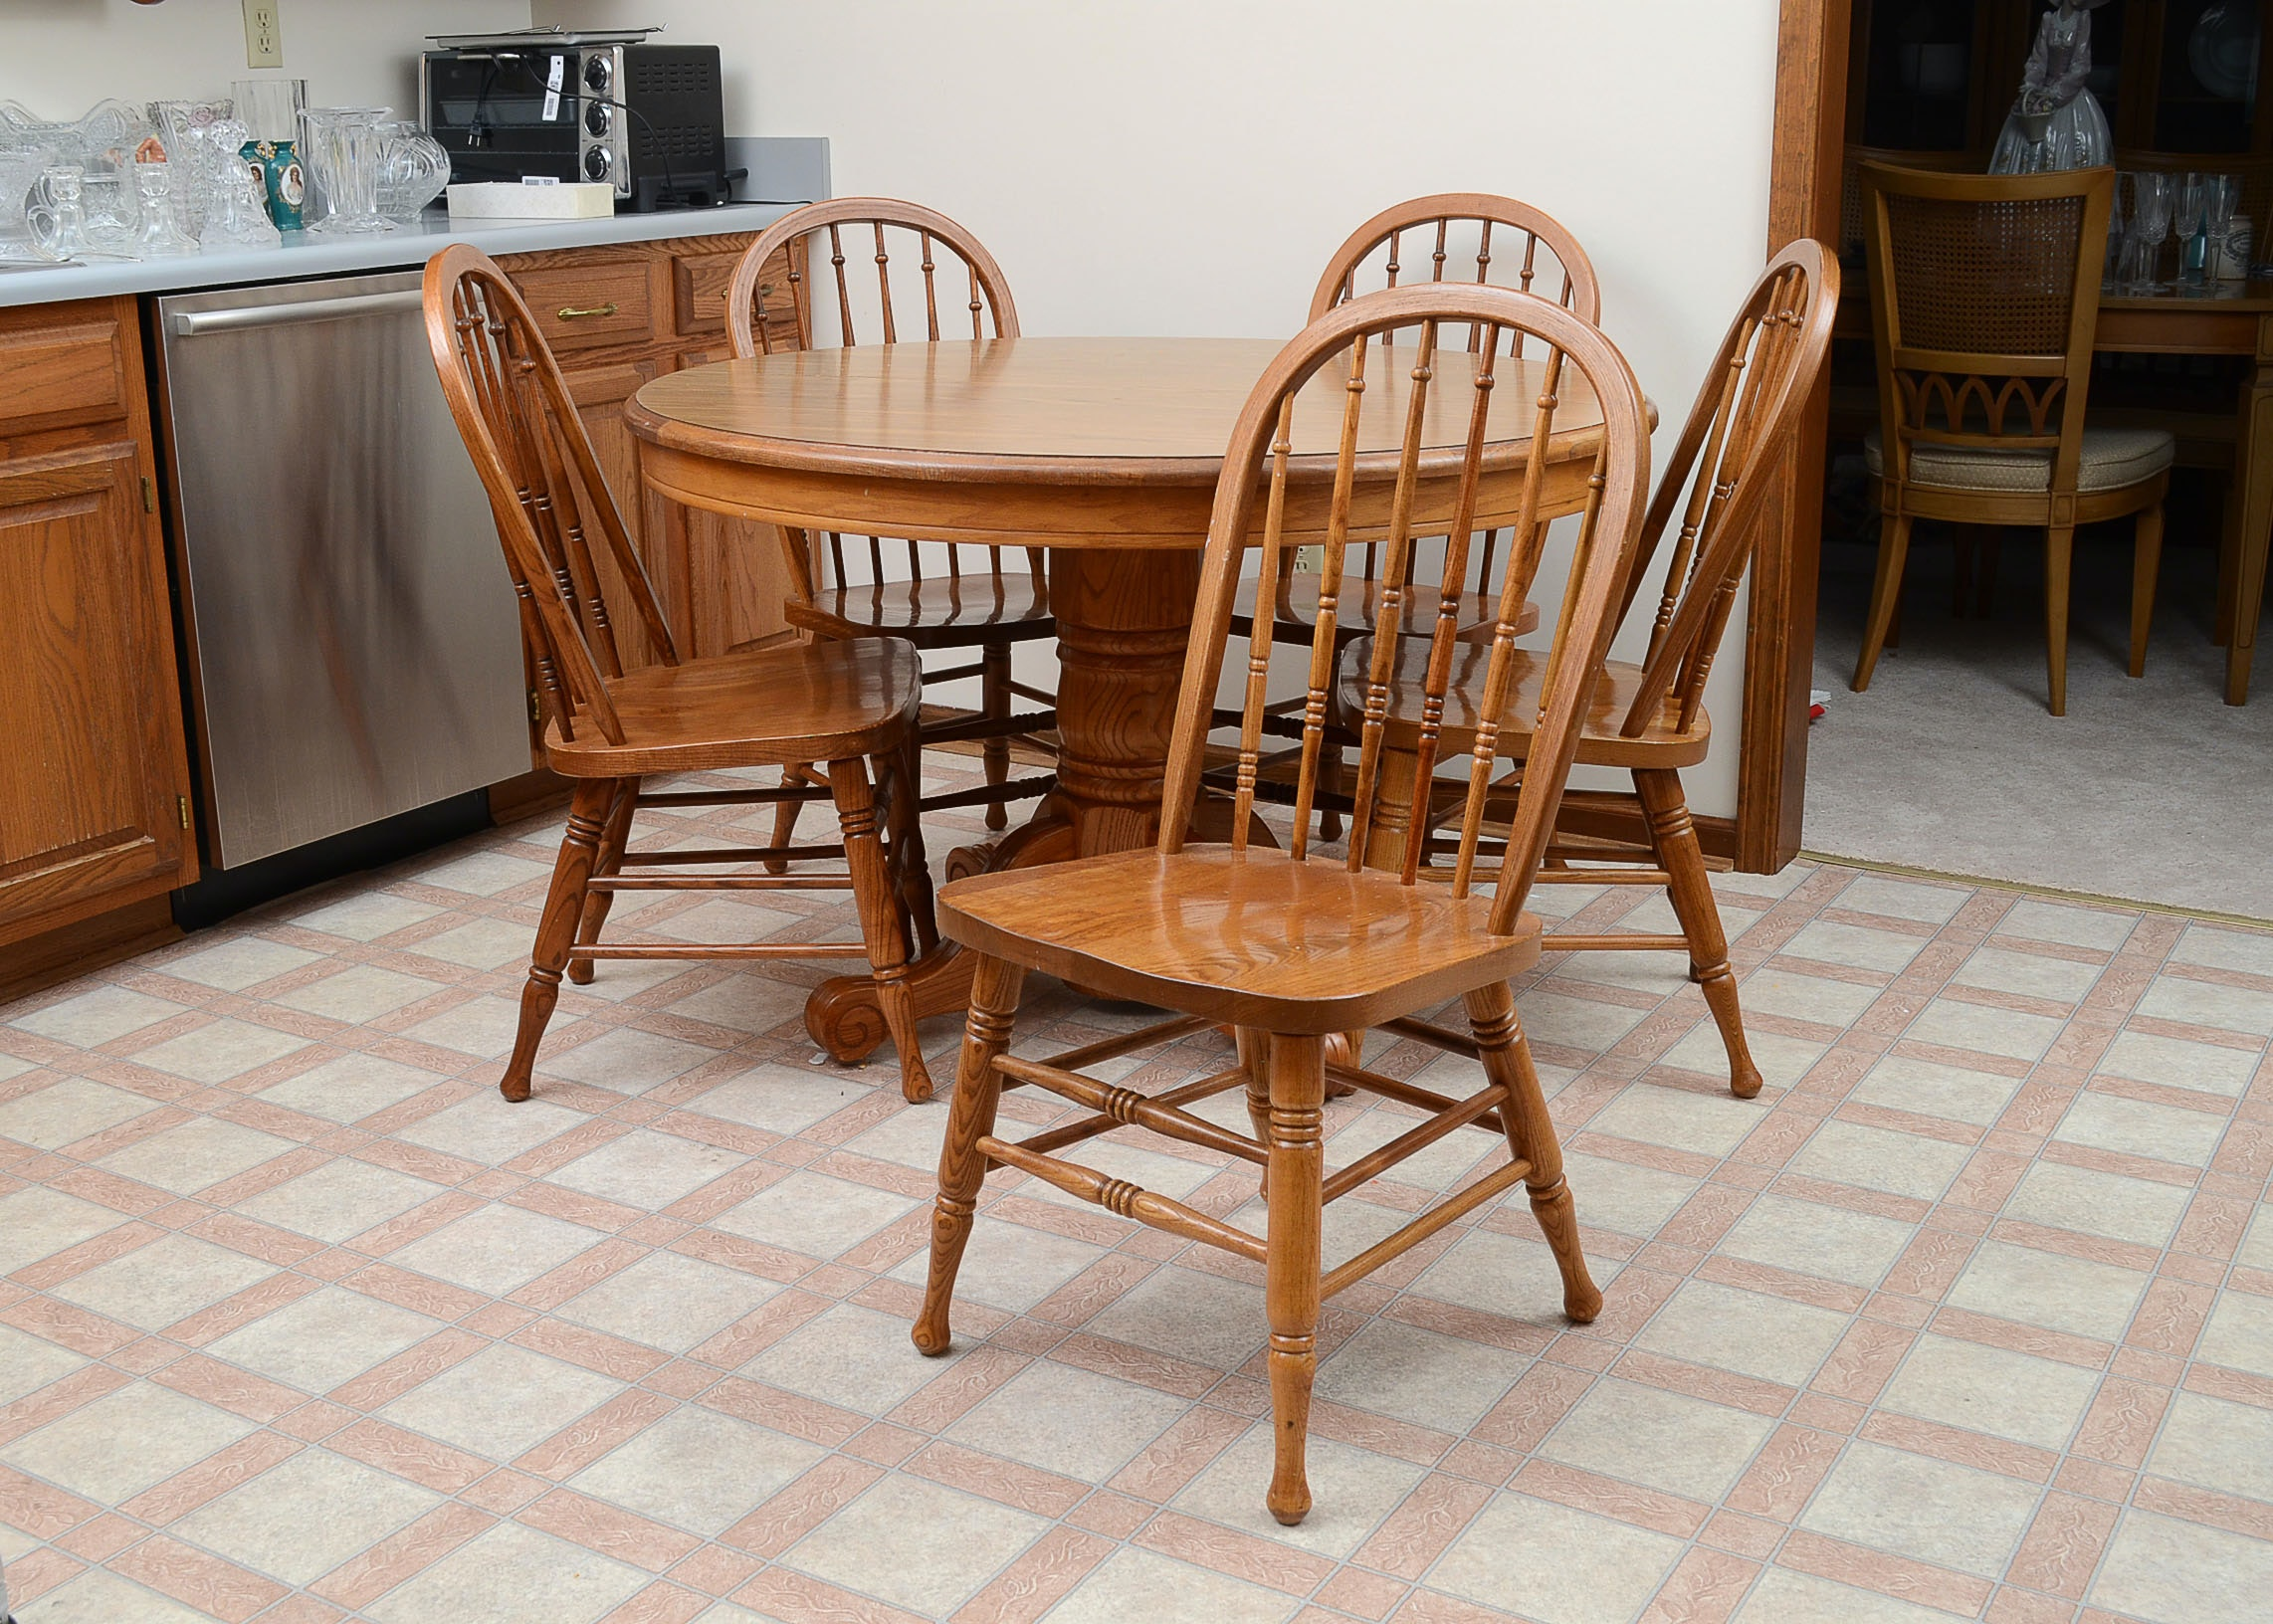 Maple Kitchen Table With Chair And Bench Ebth: Kitchen Table And Chairs By Walter Of Wabash : EBTH